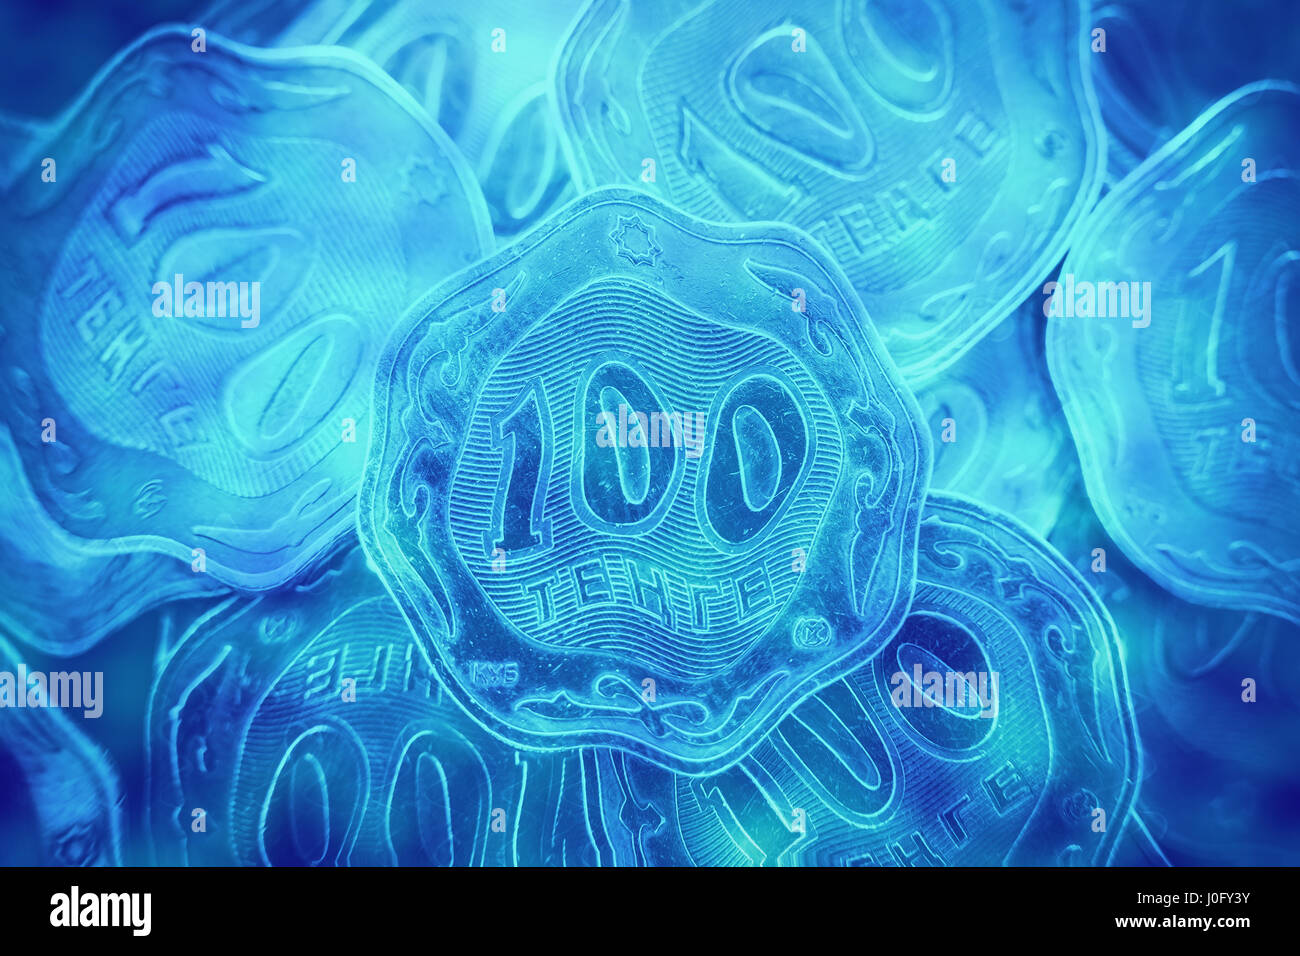 Many hundreds of tenge of coins, Kazakhstan money. Cold and distorted coins as if in water, close-ups - Stock Image